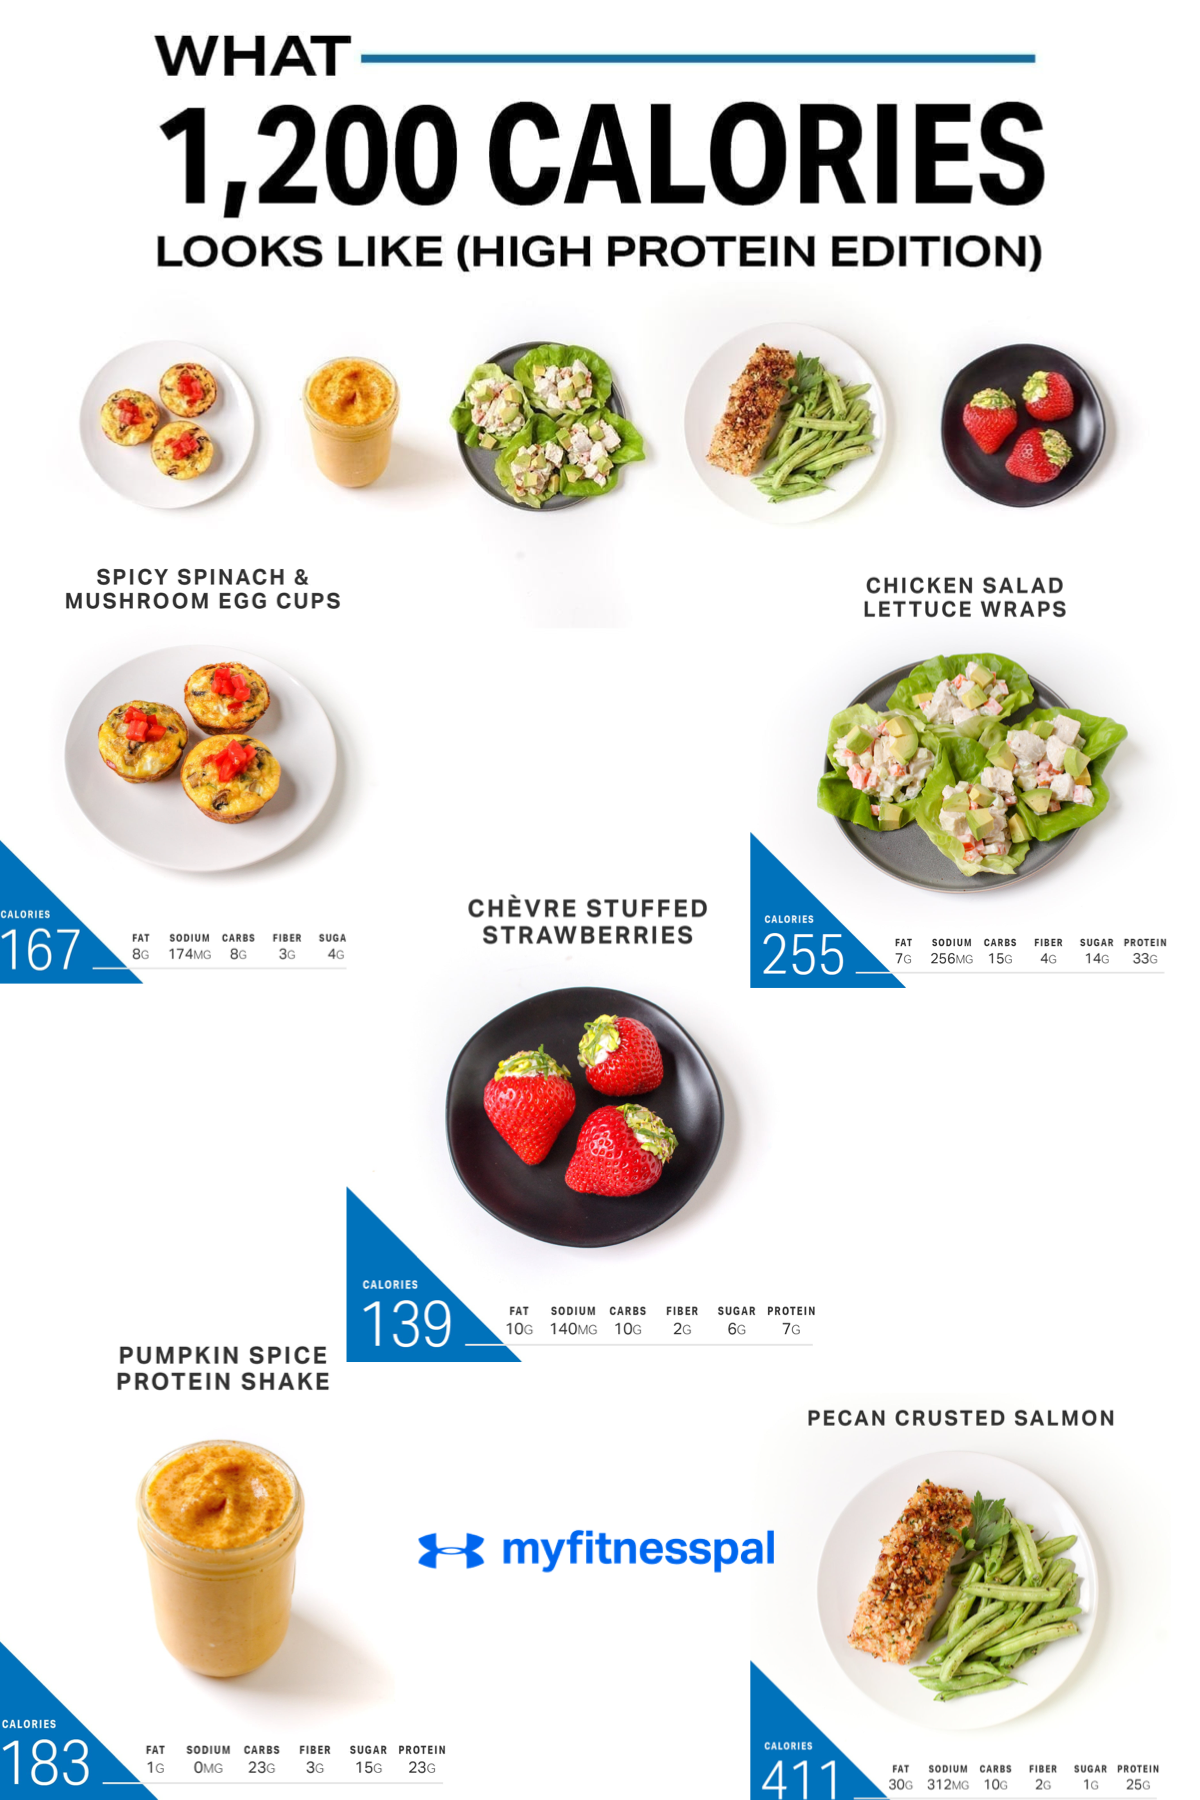 What 1,200 Calories Looks Like (Protein Edition) 1200